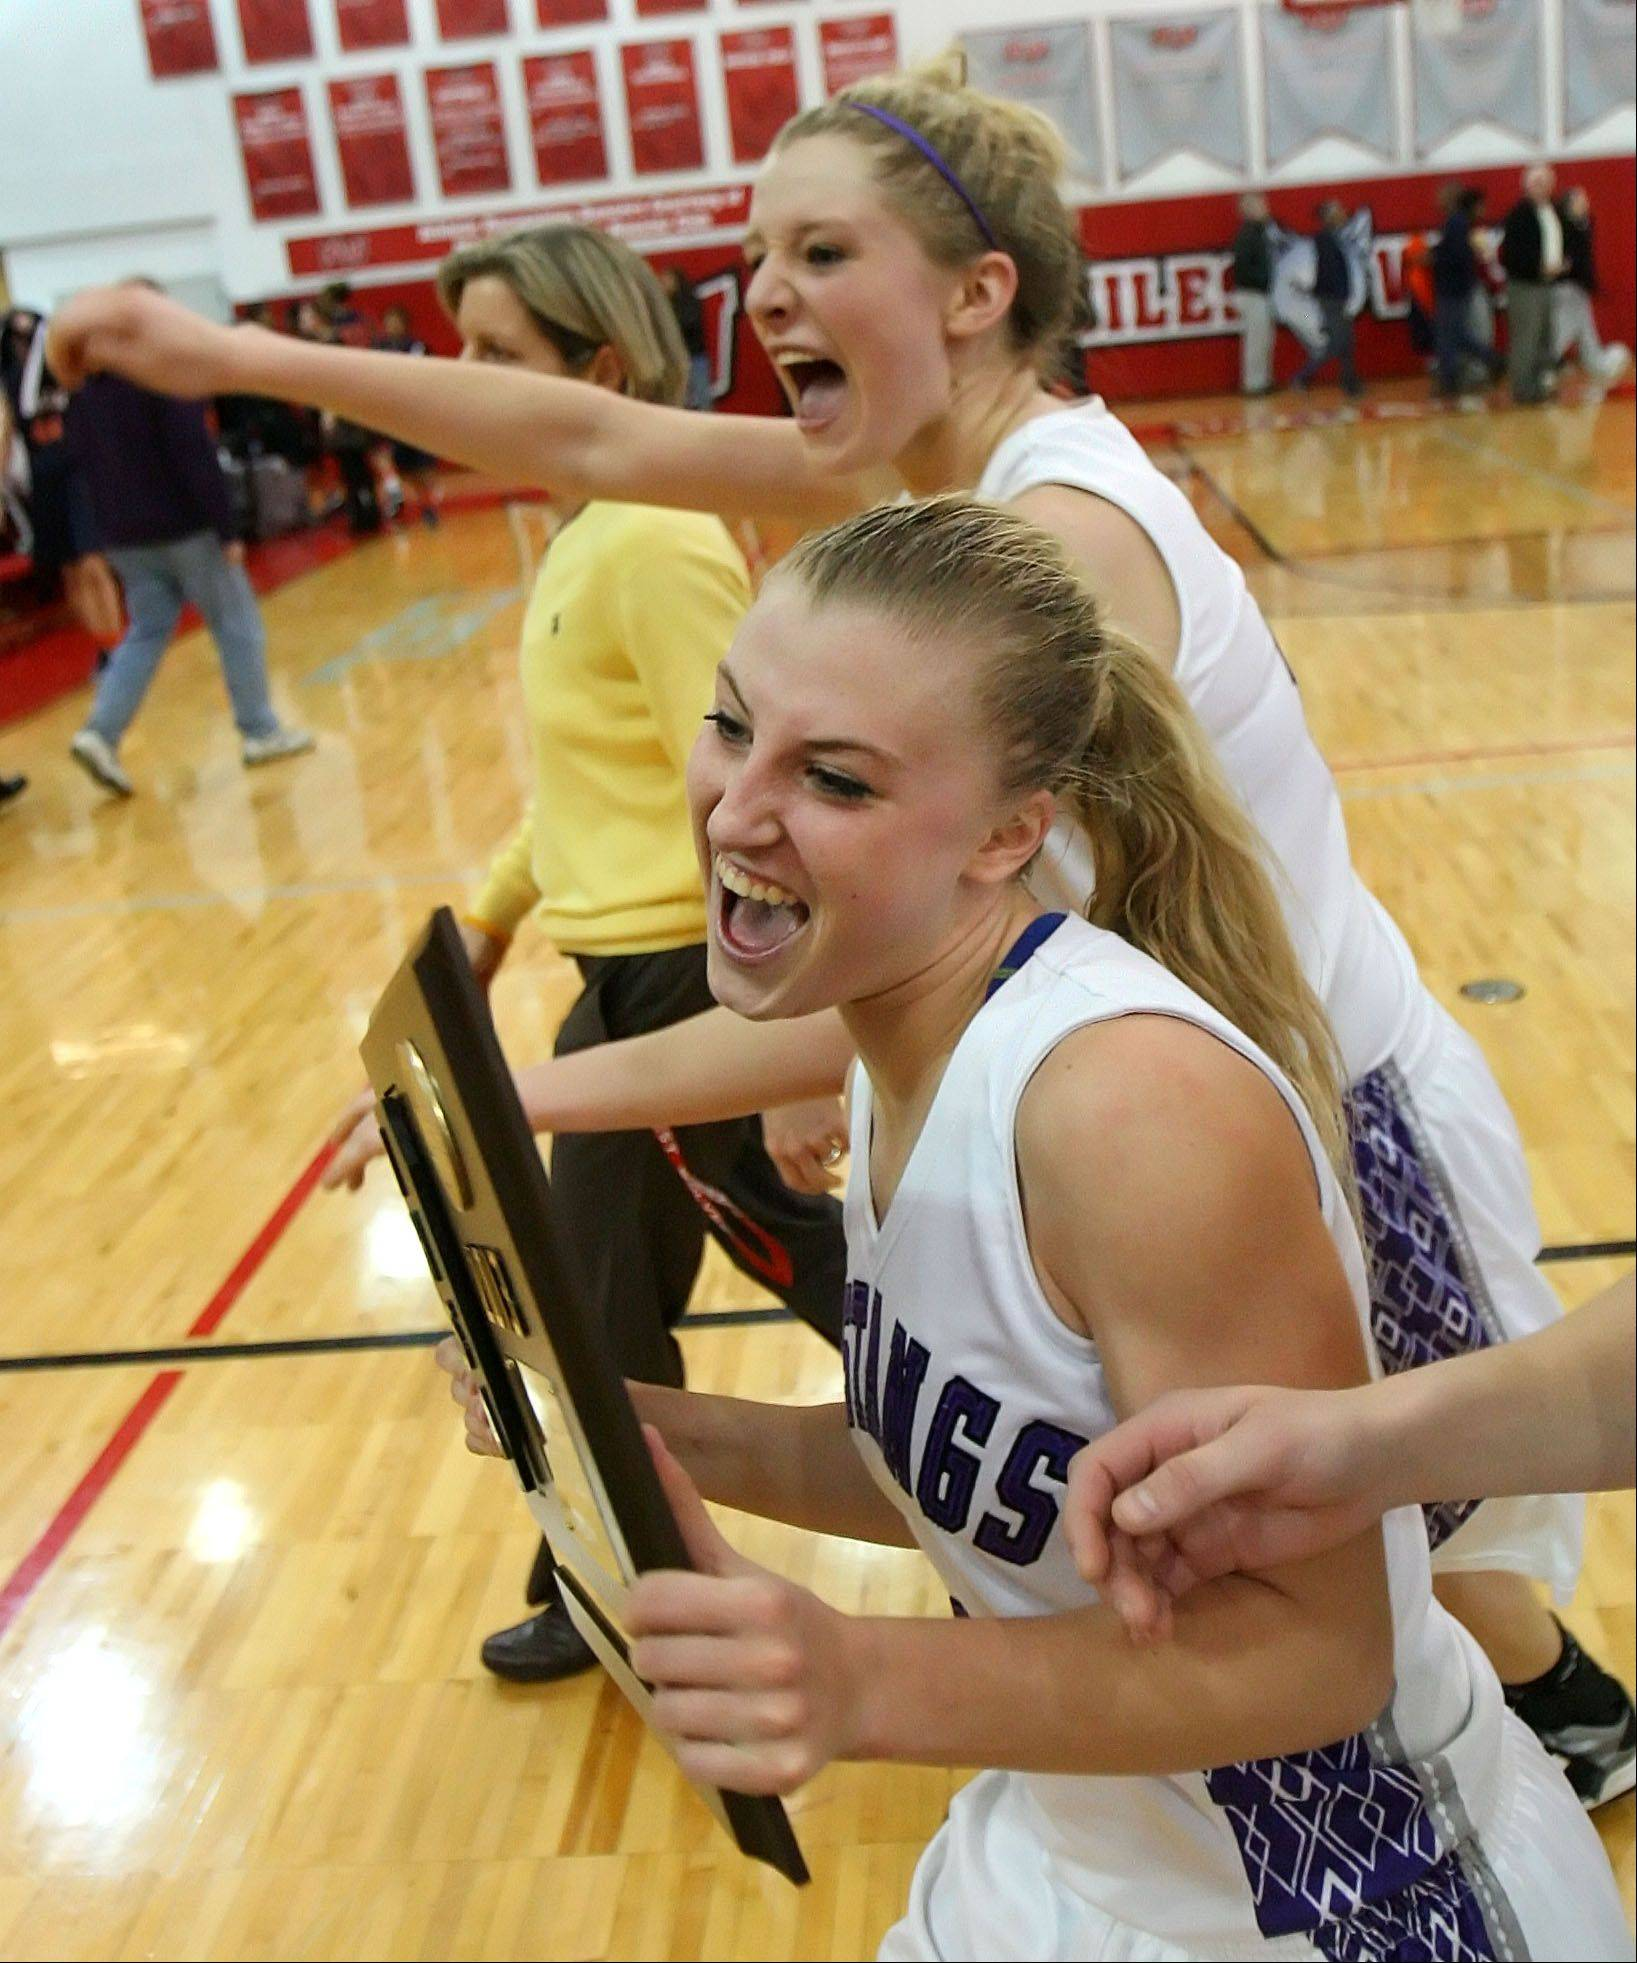 Rolling Meadows' Jenny Vliet, back, and Jackie Kemph bring the trophy back to their team after beating Evanston in Class 4A Niles West supersectional play Monday night in Skokie.